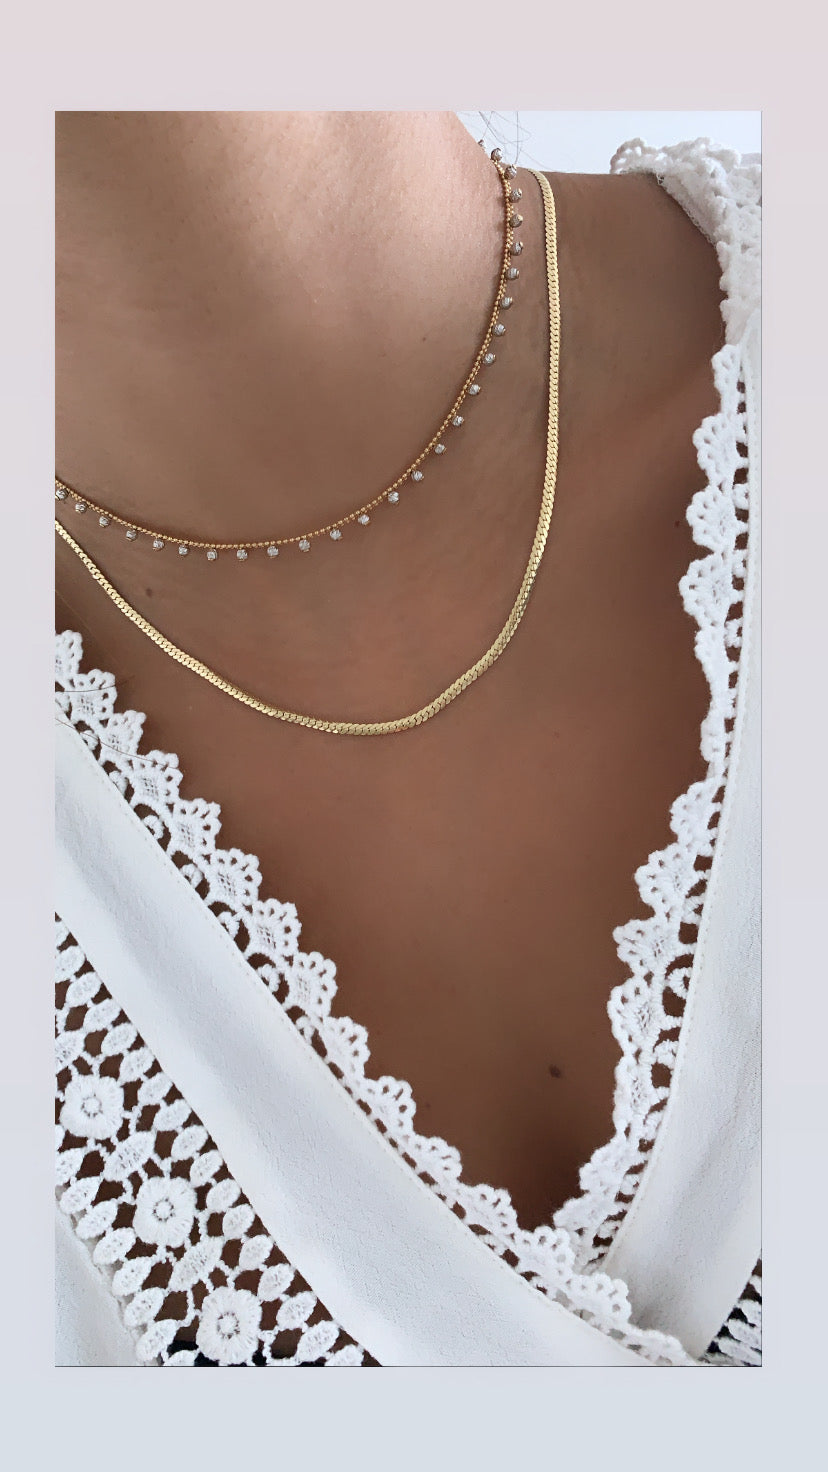 Skinny Flat Snake Necklace